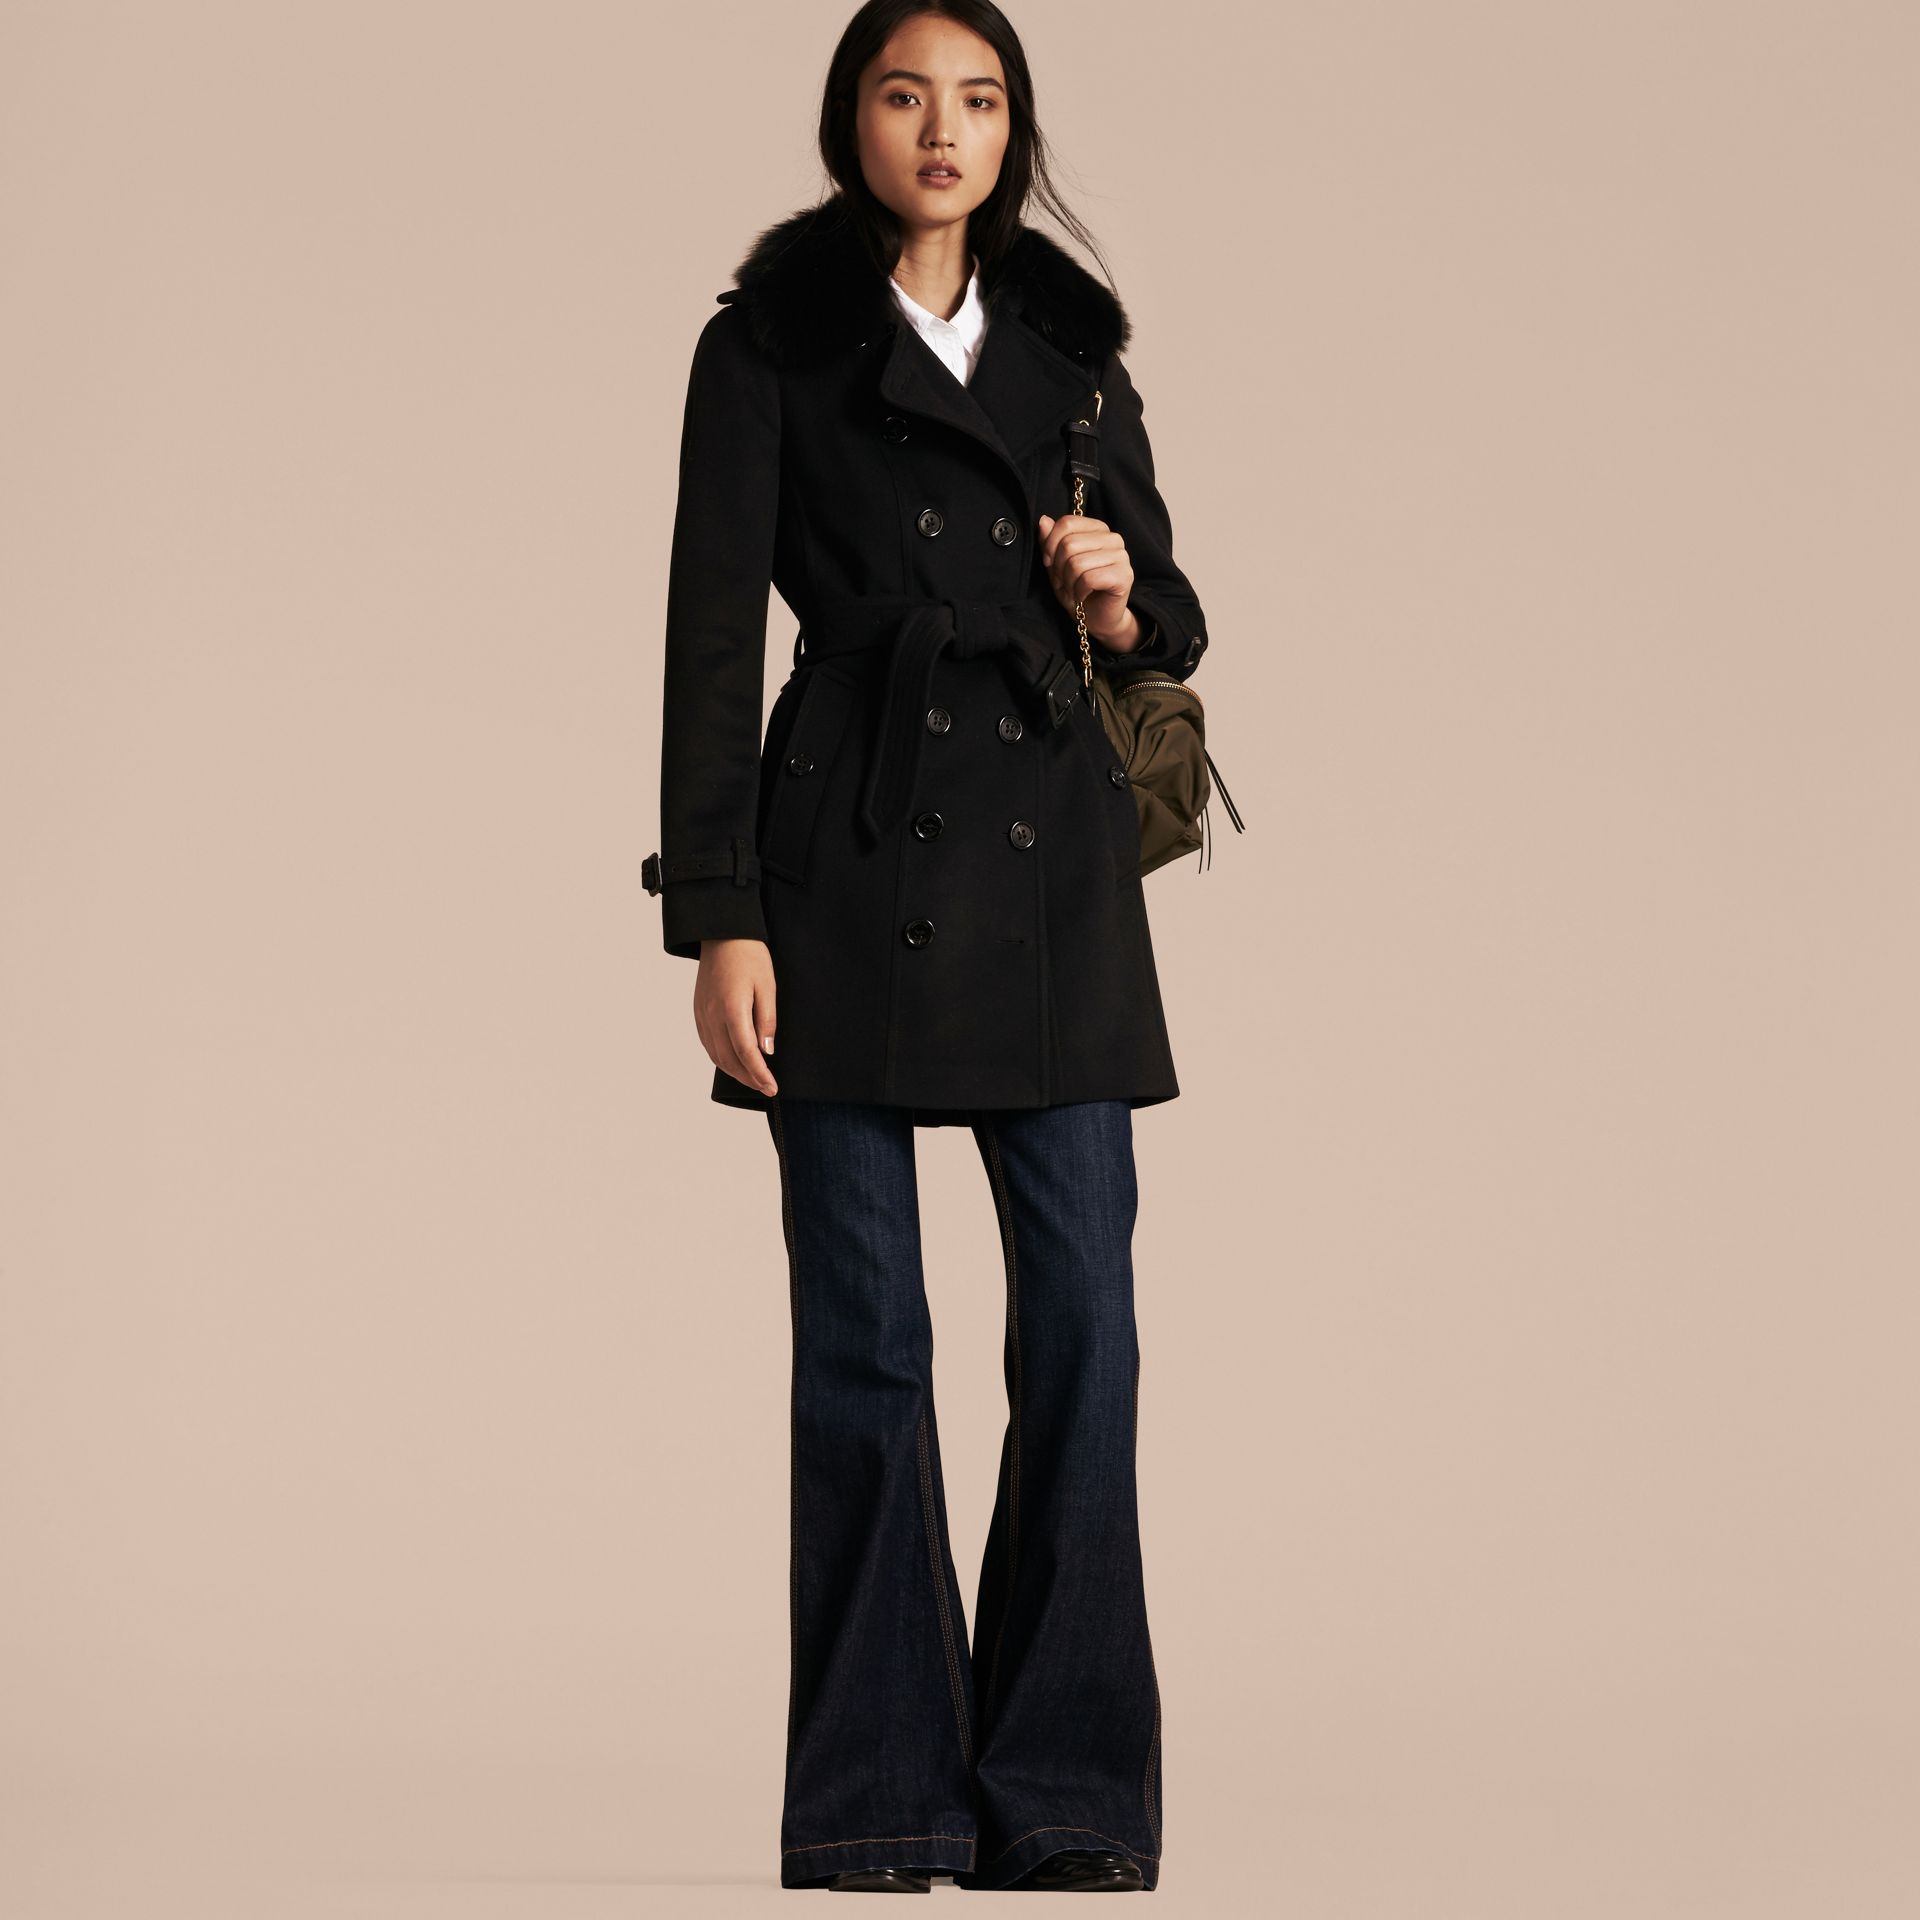 Wool Cashmere Trench Coat with Fur Collar in Black - Women | Burberry Canada - gallery image 6